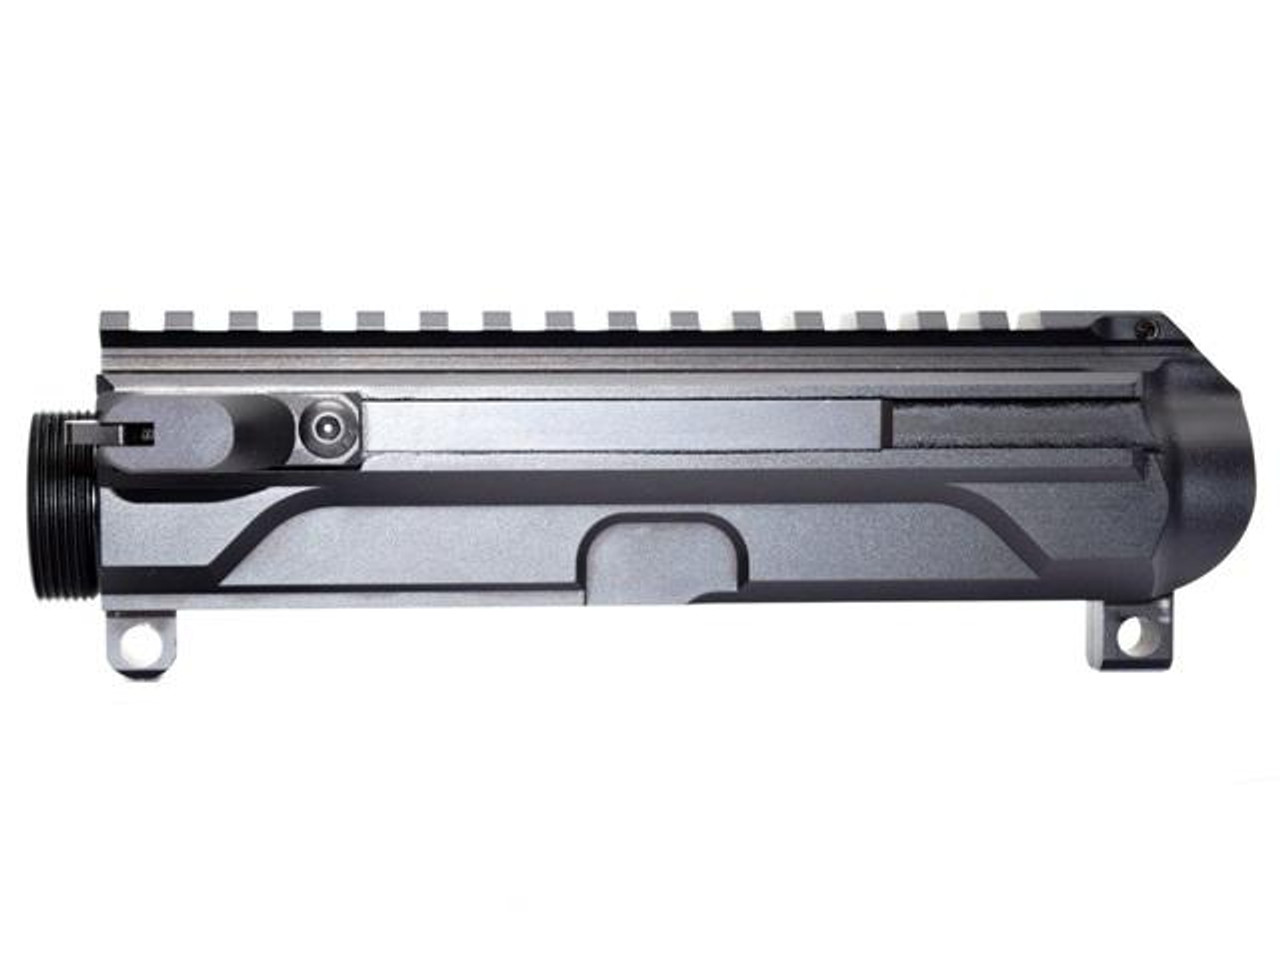 Gibbz Arms MG4 Side Charging Upper Receiver - Stripped Upper/AR15